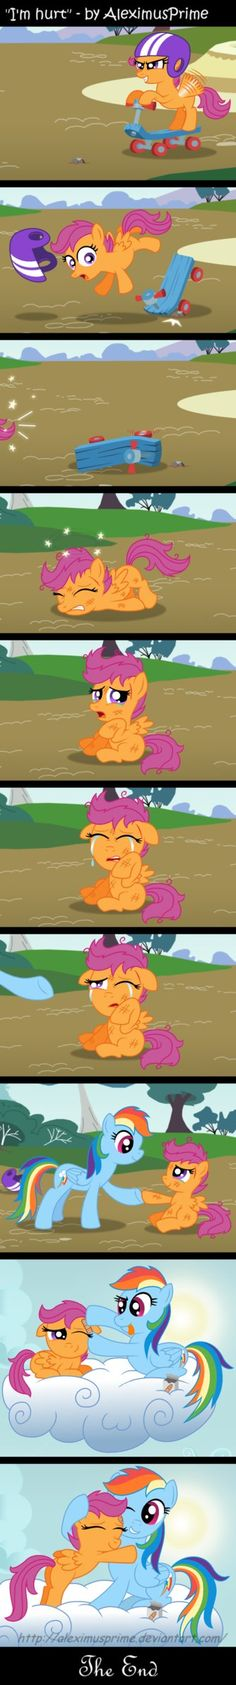 Scoots: thanks mommy.(sniff sniff) Rd: shh it's ok the pain will stop soon. Scoots: ok Rd: here lay on my chest and relax(lays down) Scoots: thanks *yawn* ( falls asleep) Rd: (pets her mane) that's my girl,sleep tight my little scootaloo Rainbow Dash, Deviantart Comic, Rick And Morty Crossover, Im Hurt, Cute Sister, My Little Pony Cartoon, Sweetie Belle, Cute Ponies, Mlp Comics